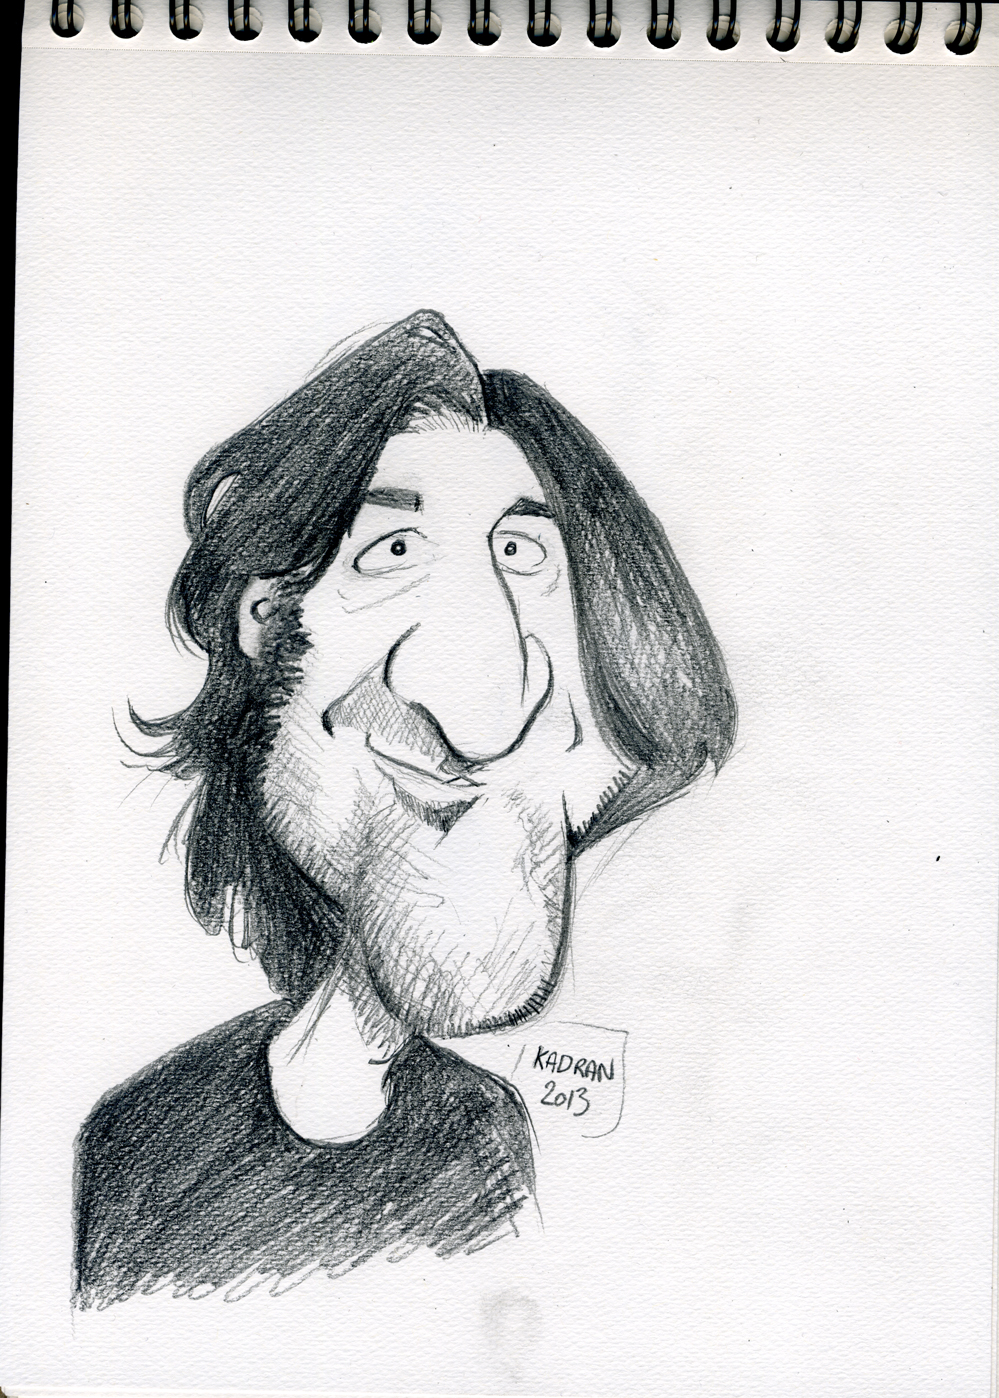 Caricature de David Duque ( caricaturiste - ESPAGNE - Ségovie ) http://david-duque.blogspot.com/